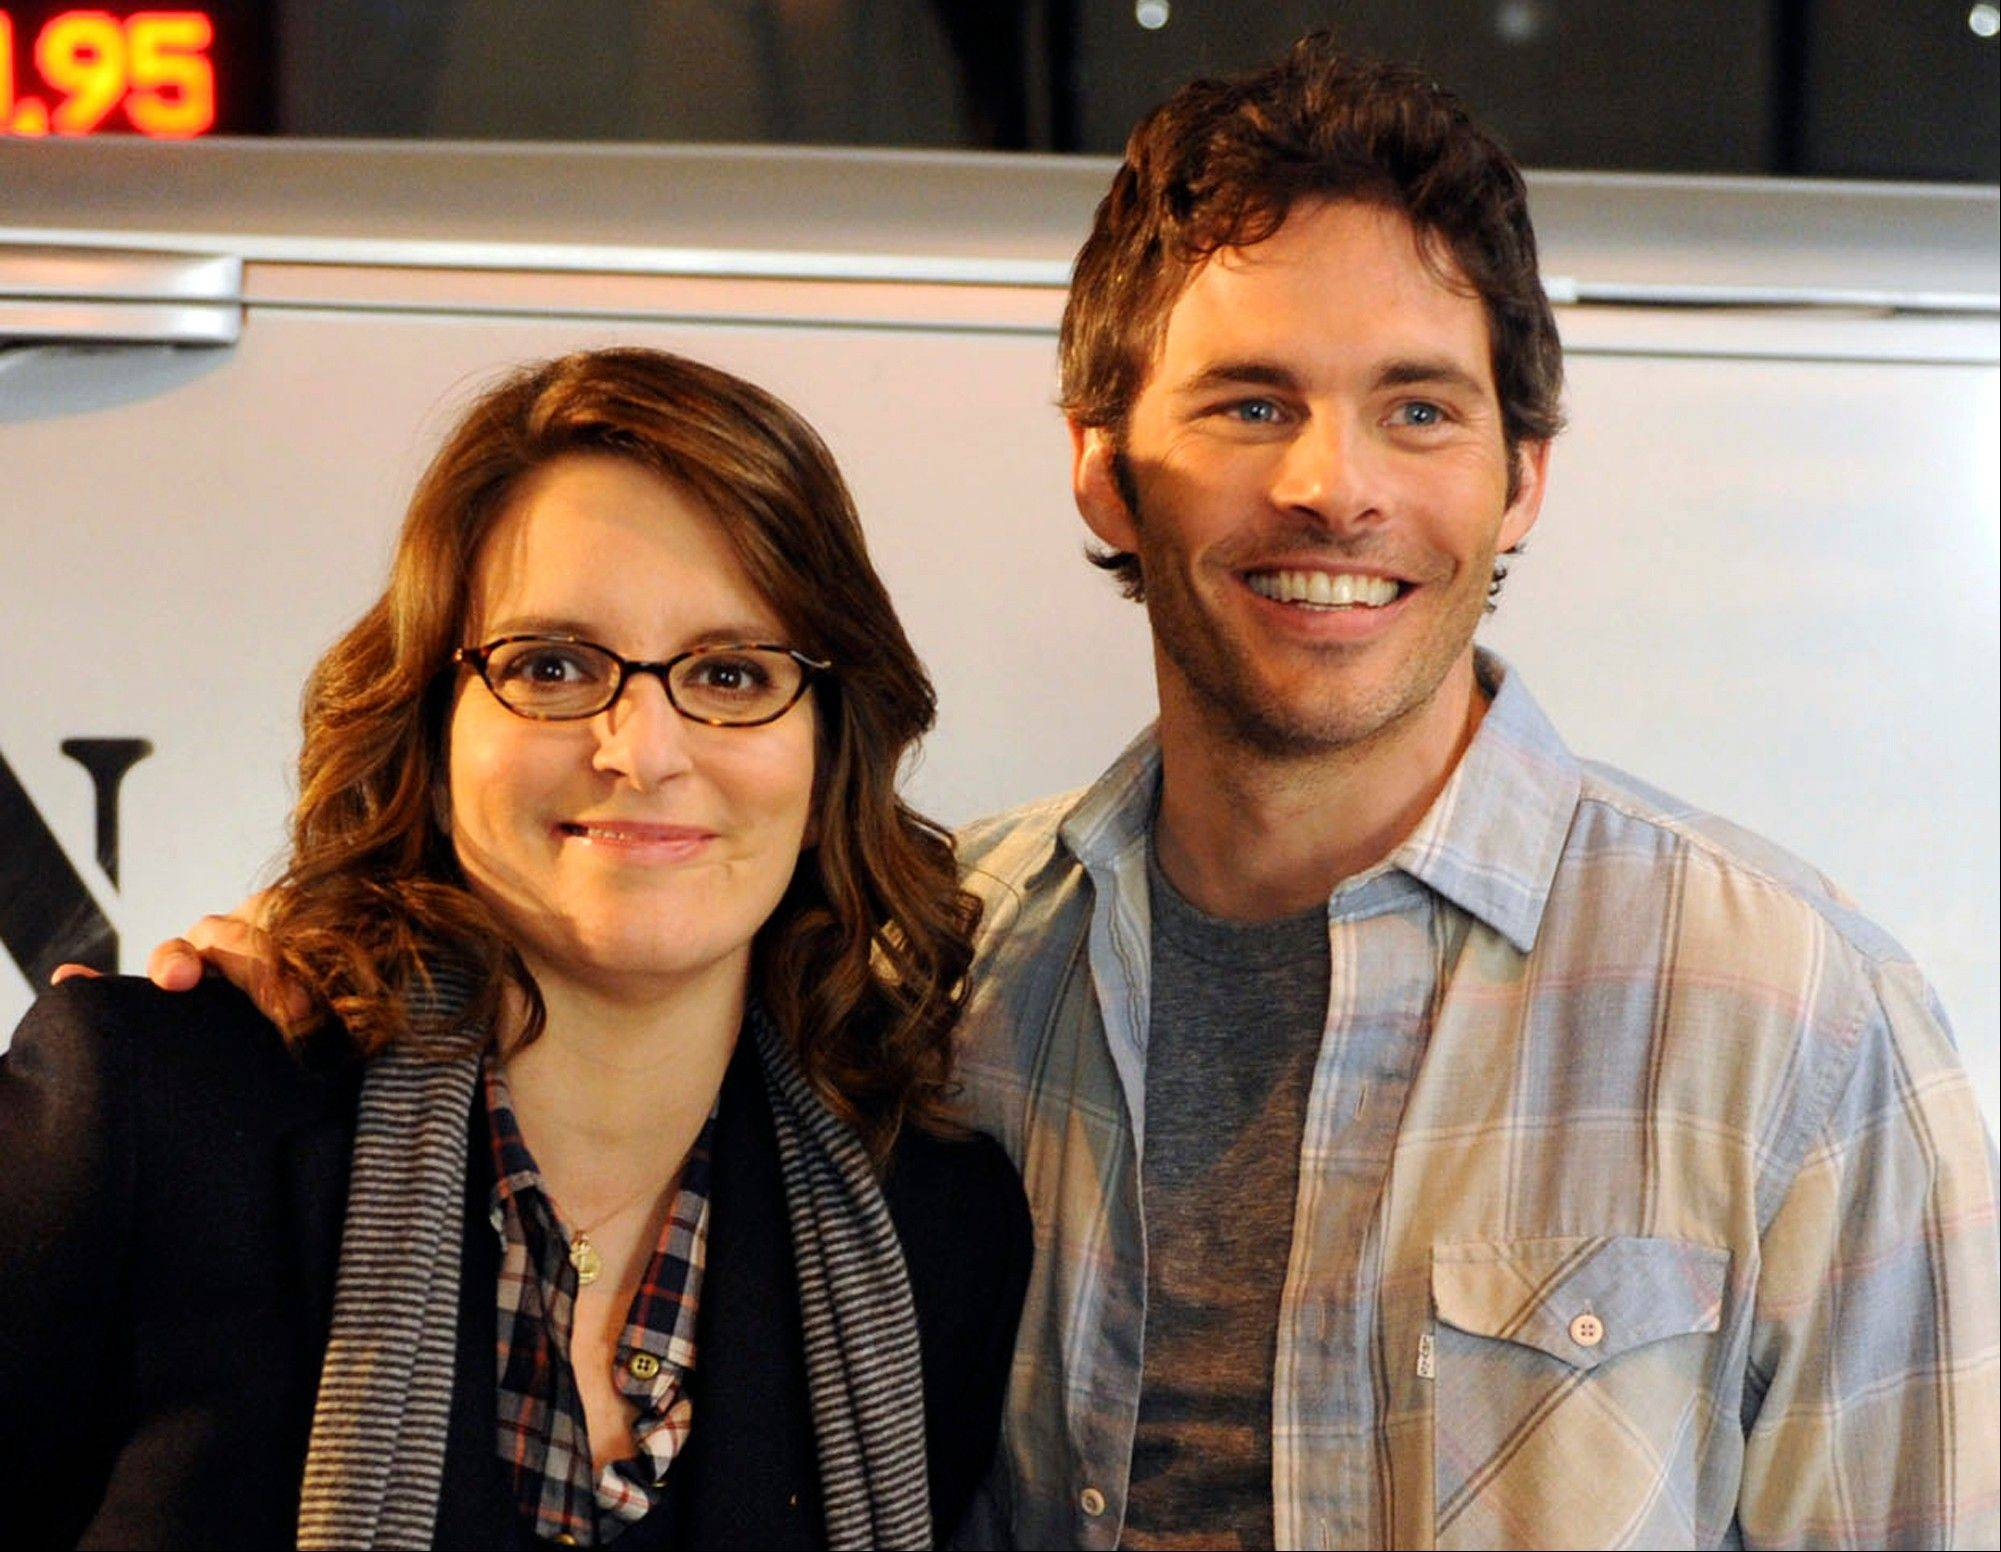 Tina Fey as Liz Lemon with James Marsden as Criss Chross in the NBC comedy �30 Rock.� The characters will wed in an episode airing Nov. 29.